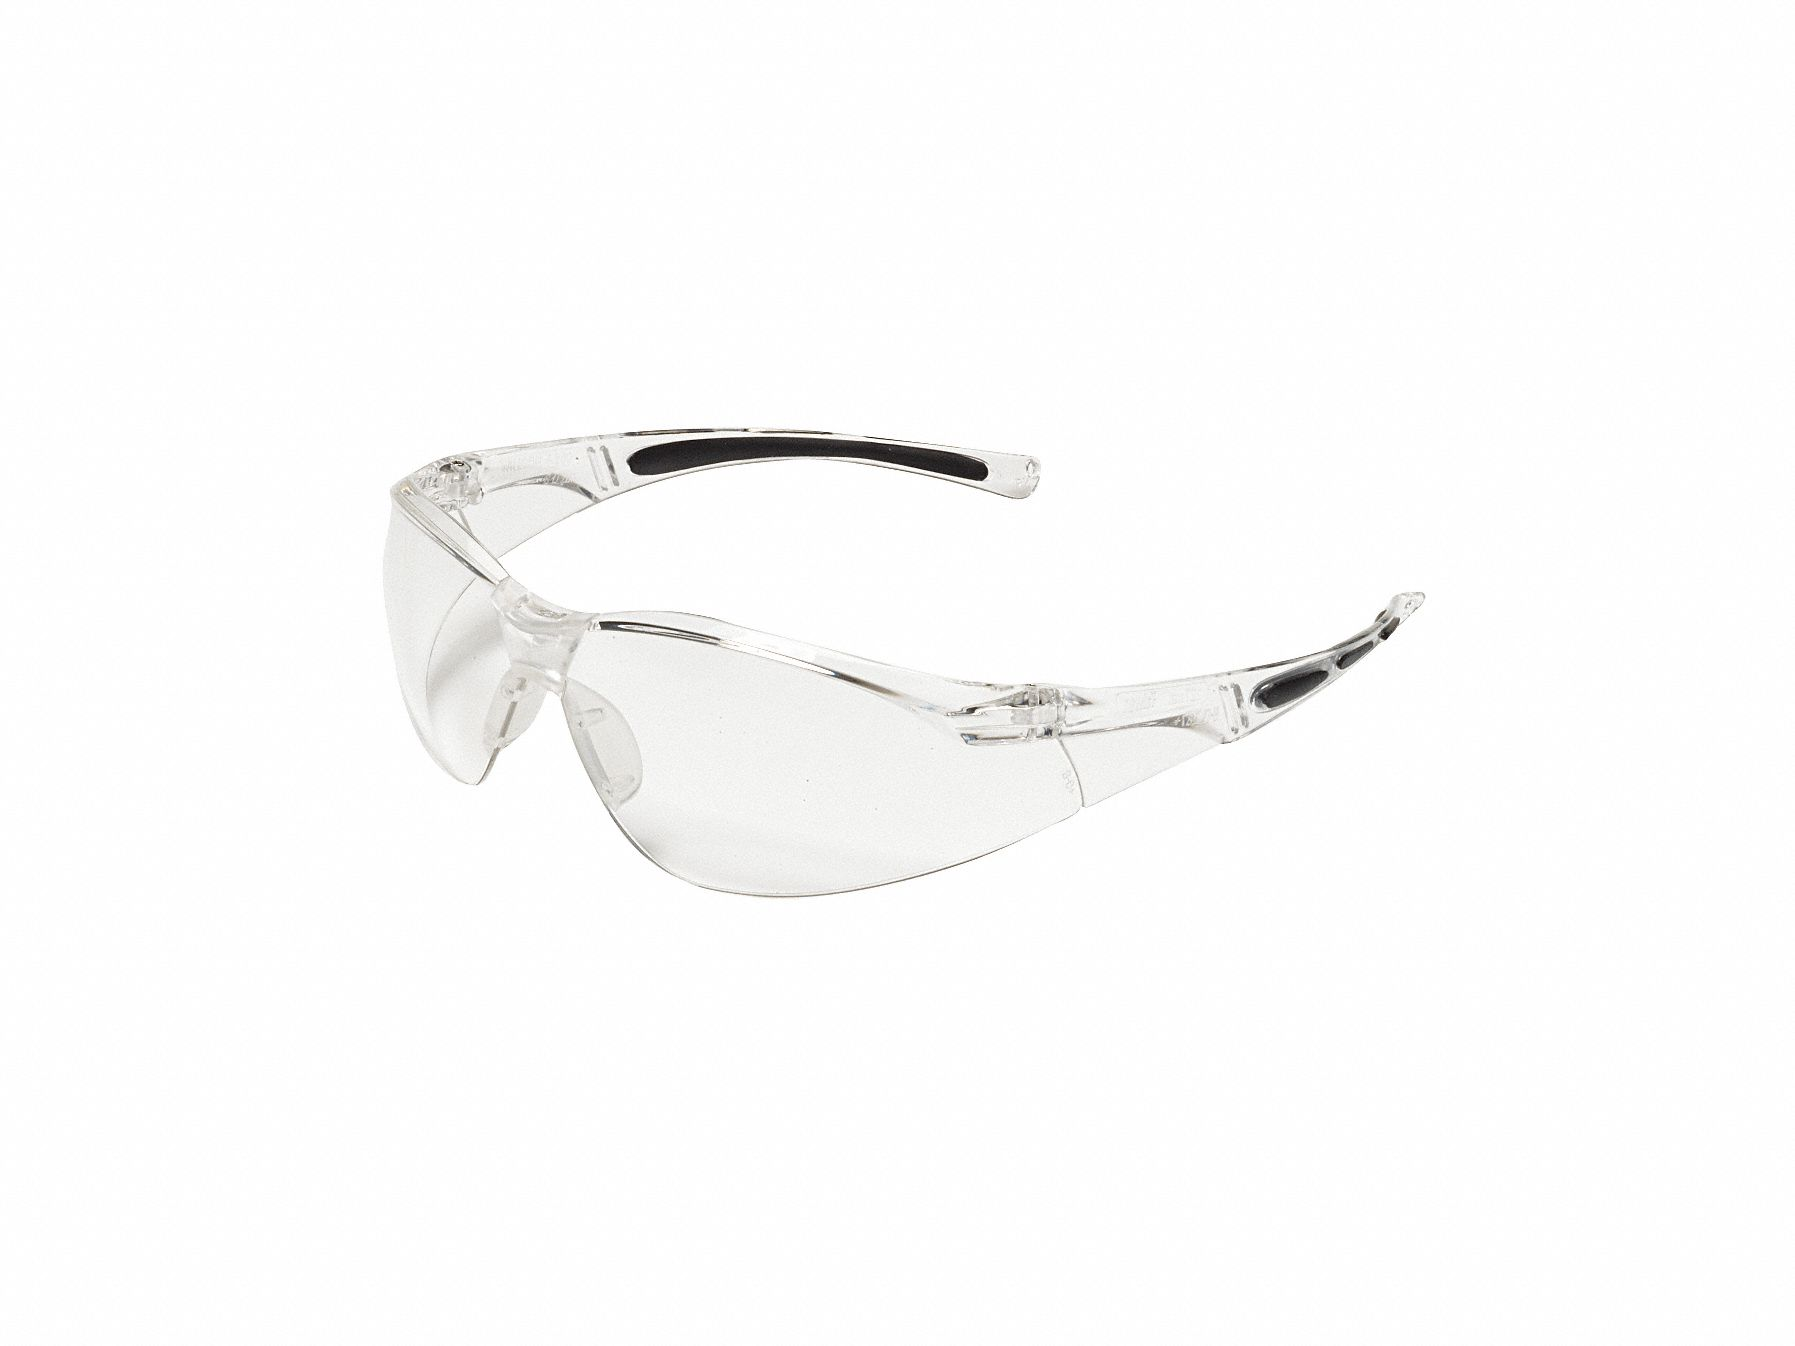 2591e01d9cdc HONEYWELL UVEX A800 Scratch-Resistant Safety Glasses